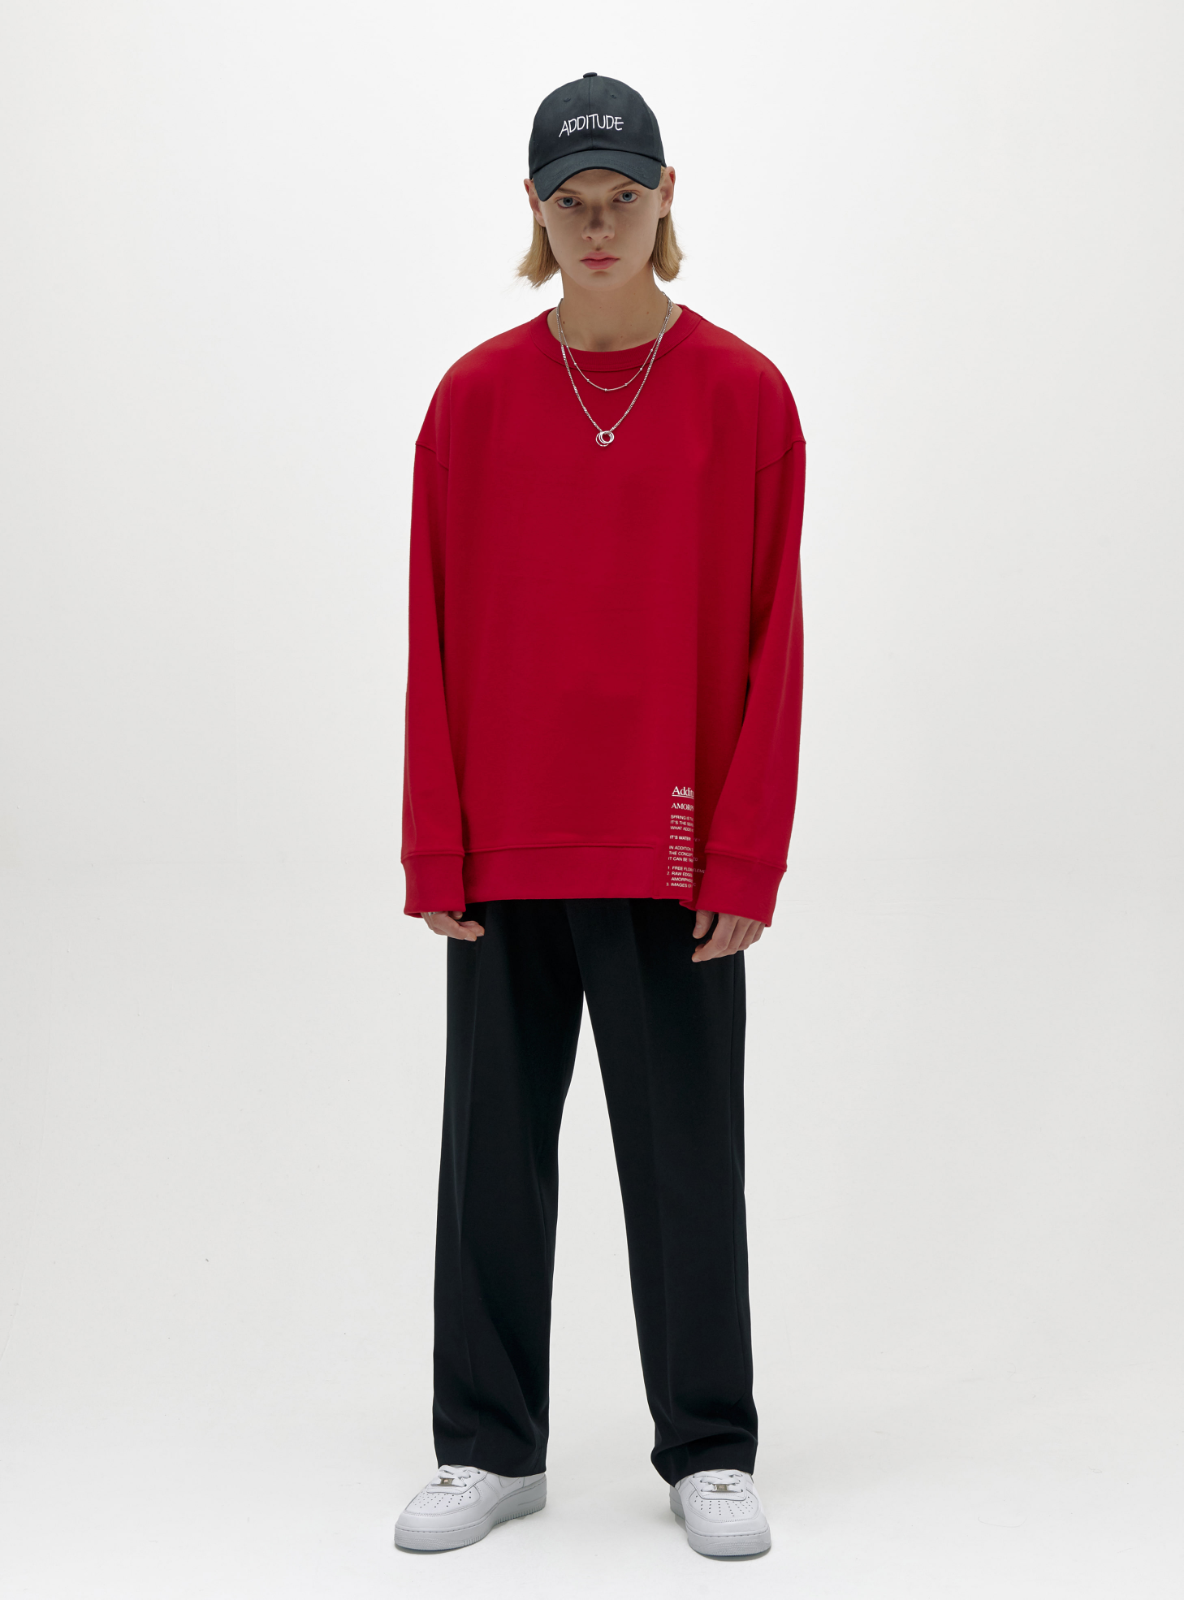 ADDITUDE No.3 SWEATSHIRT RED